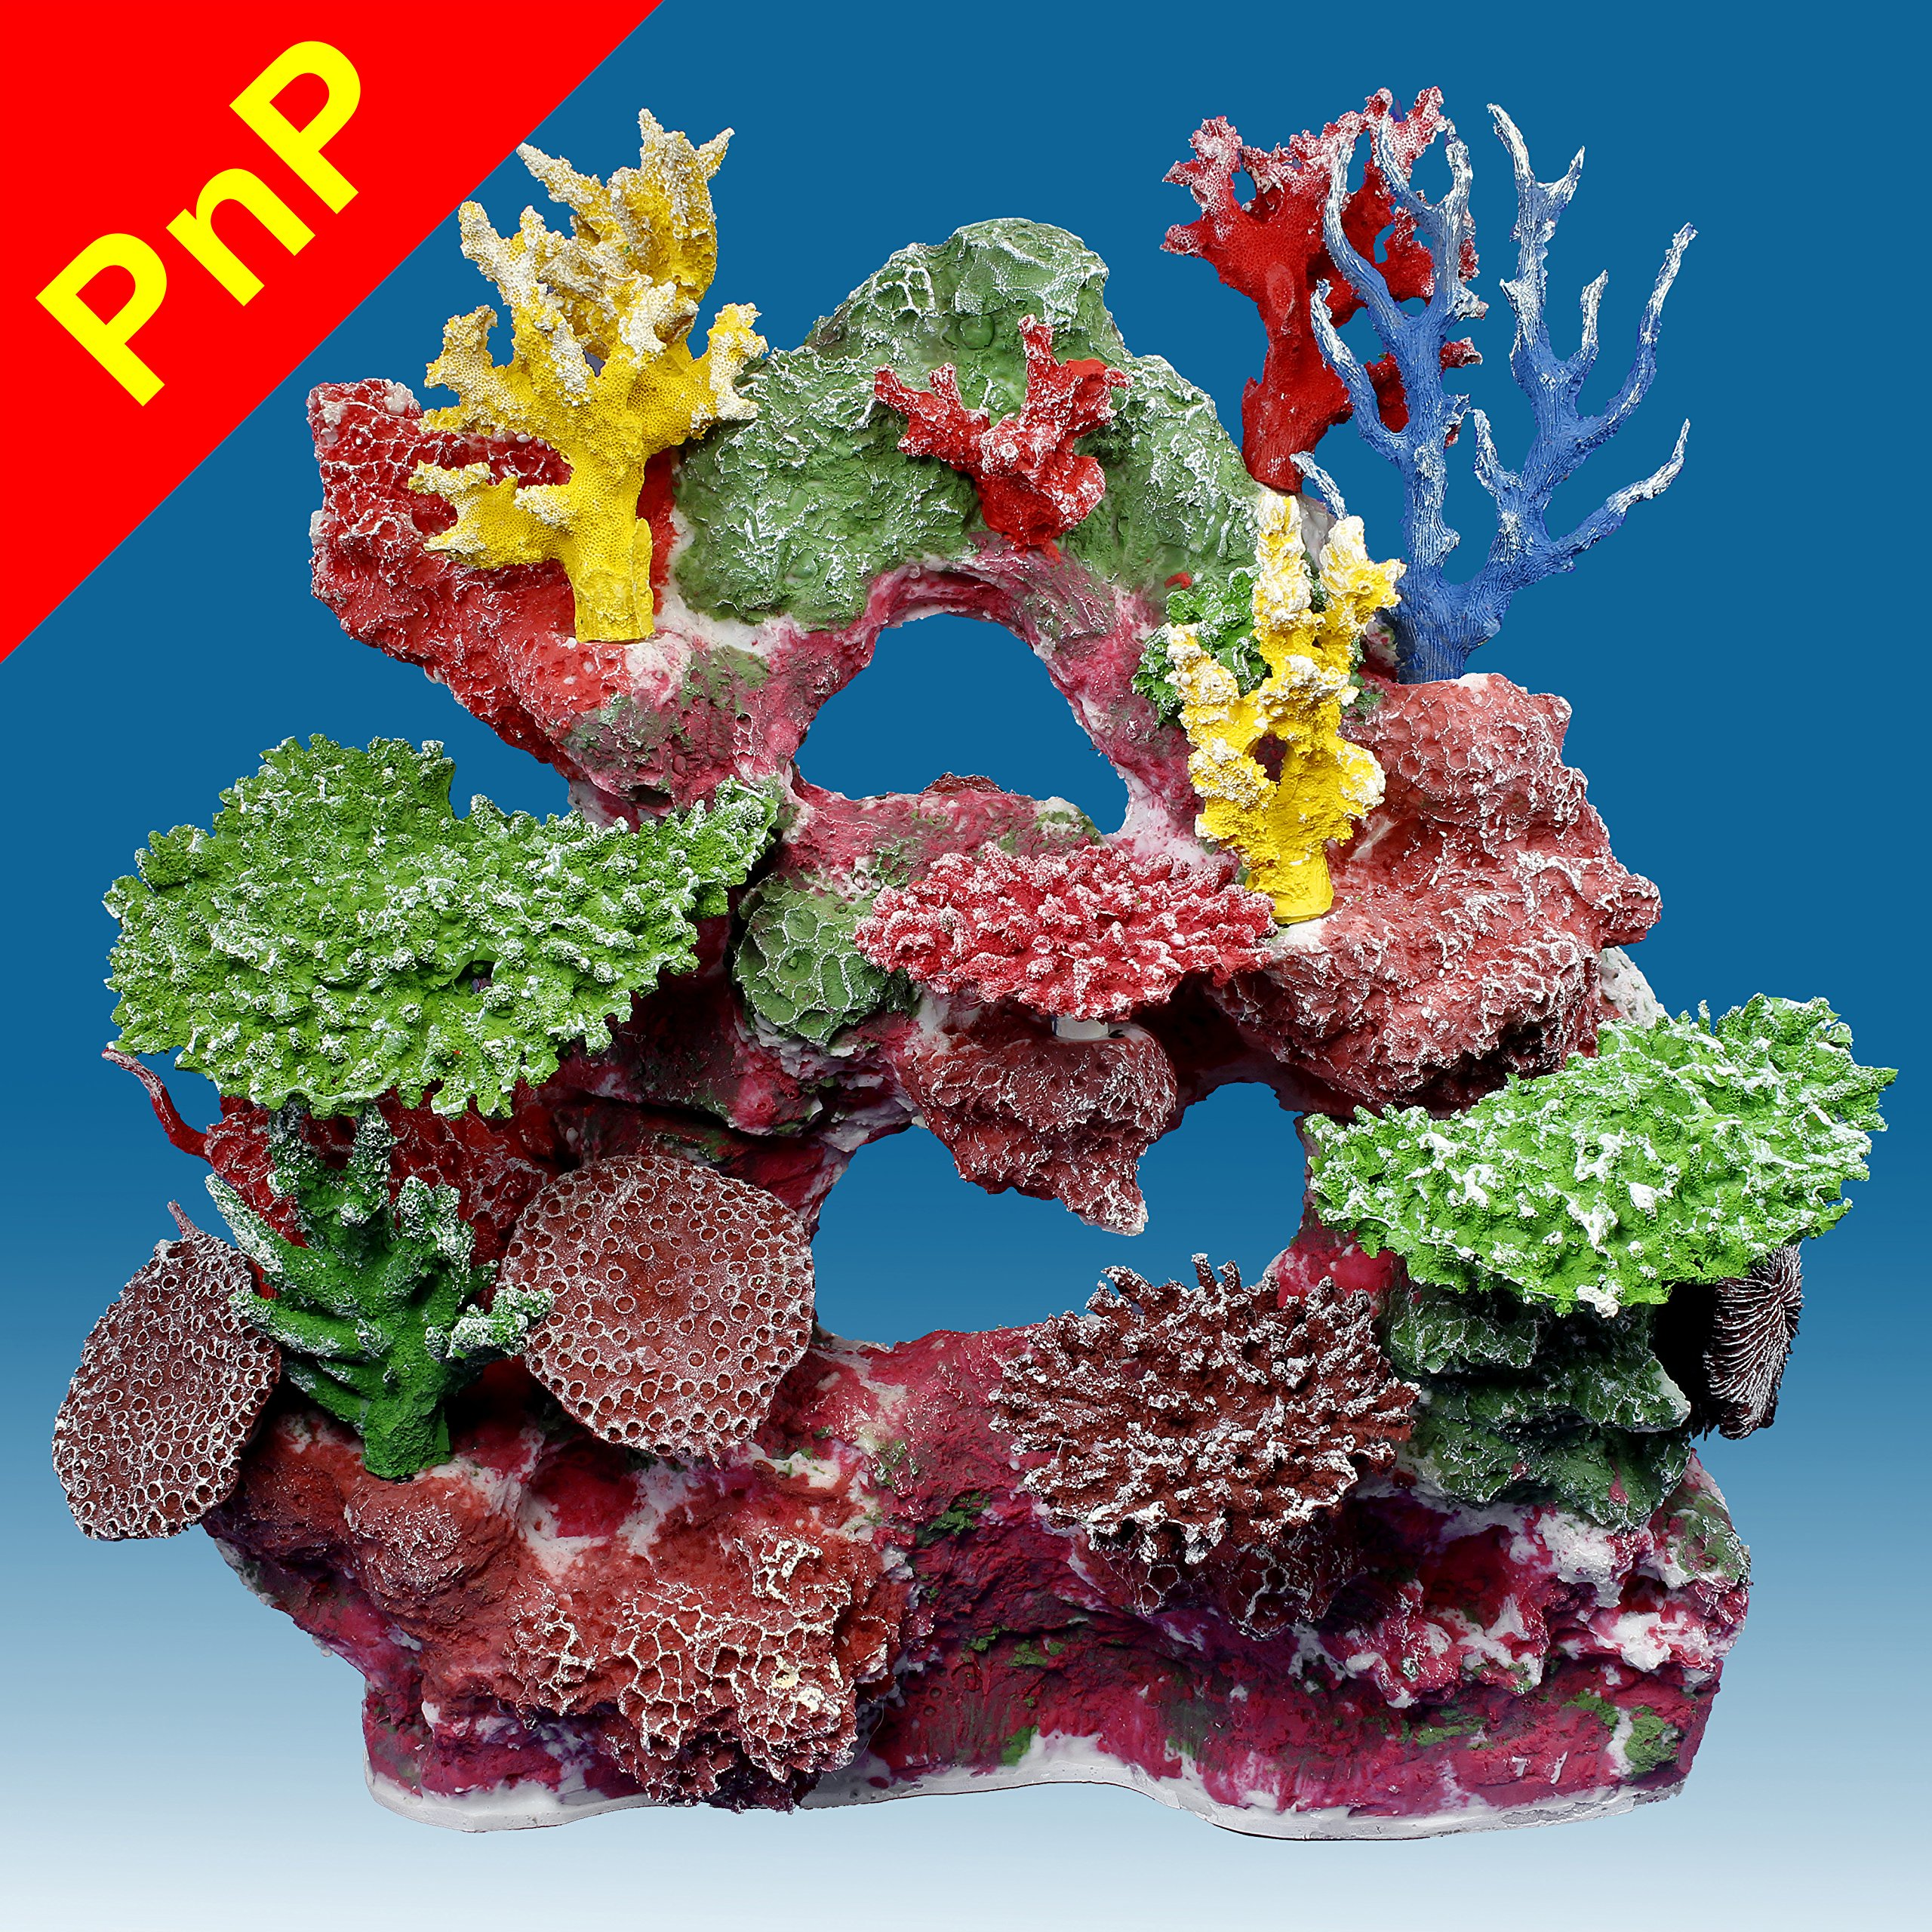 Instant Reef DM042PNP Large Artificial Coral Inserts Decor, Fake Coral Reef Decorations for Colorful Freshwater Fish Aquariums, Marine and Saltwater Fish Tanks by Instant Reef